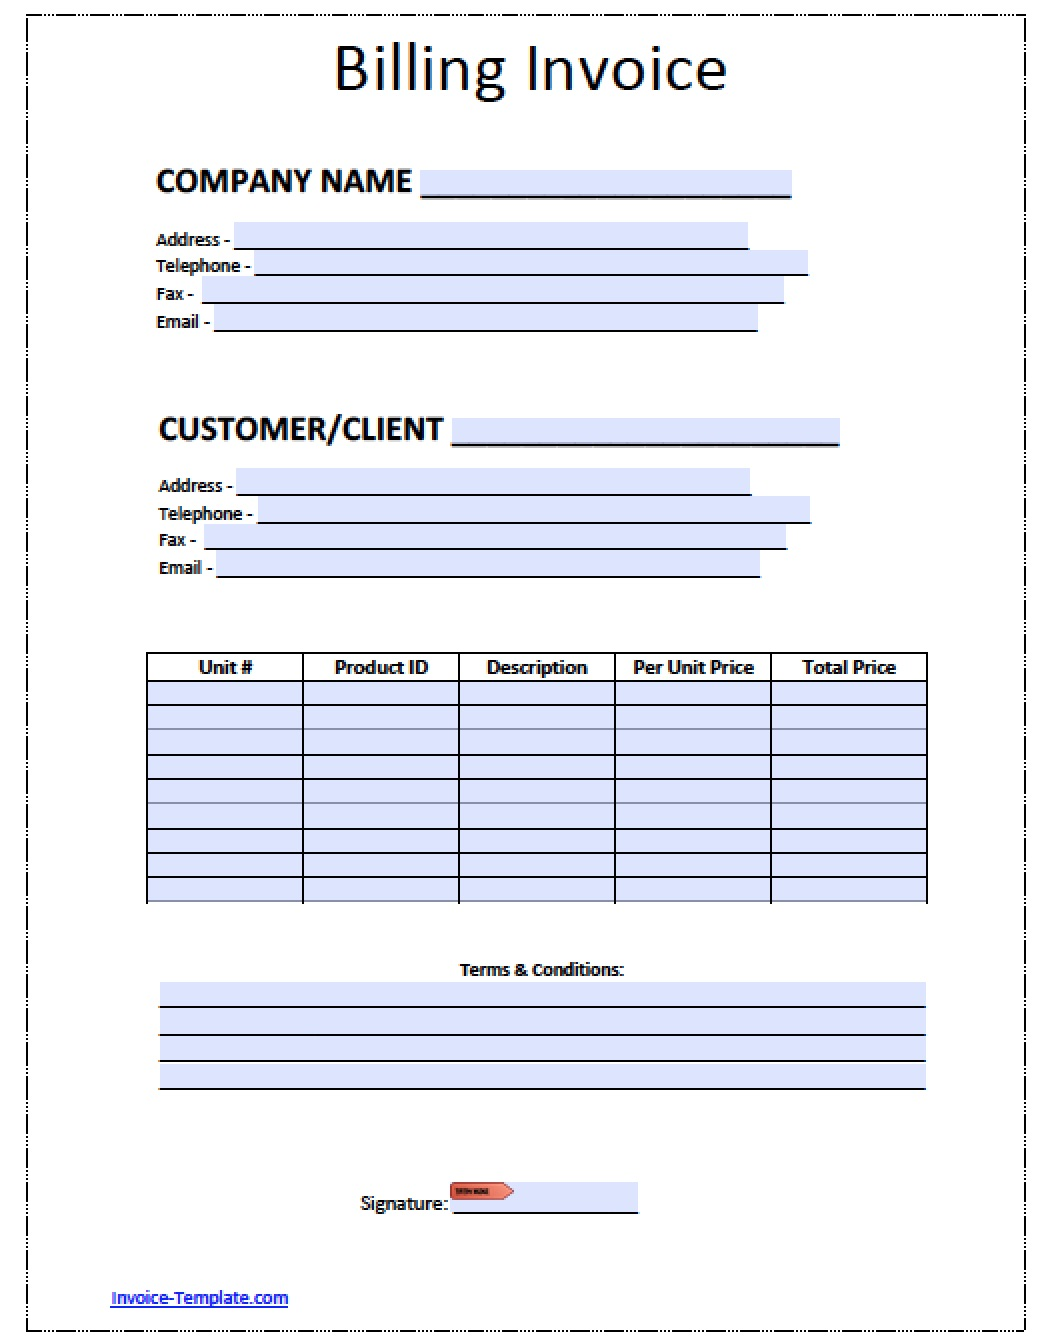 Free Billing Invoice Template Excel PDF Word Doc - Free word document invoice template for service business